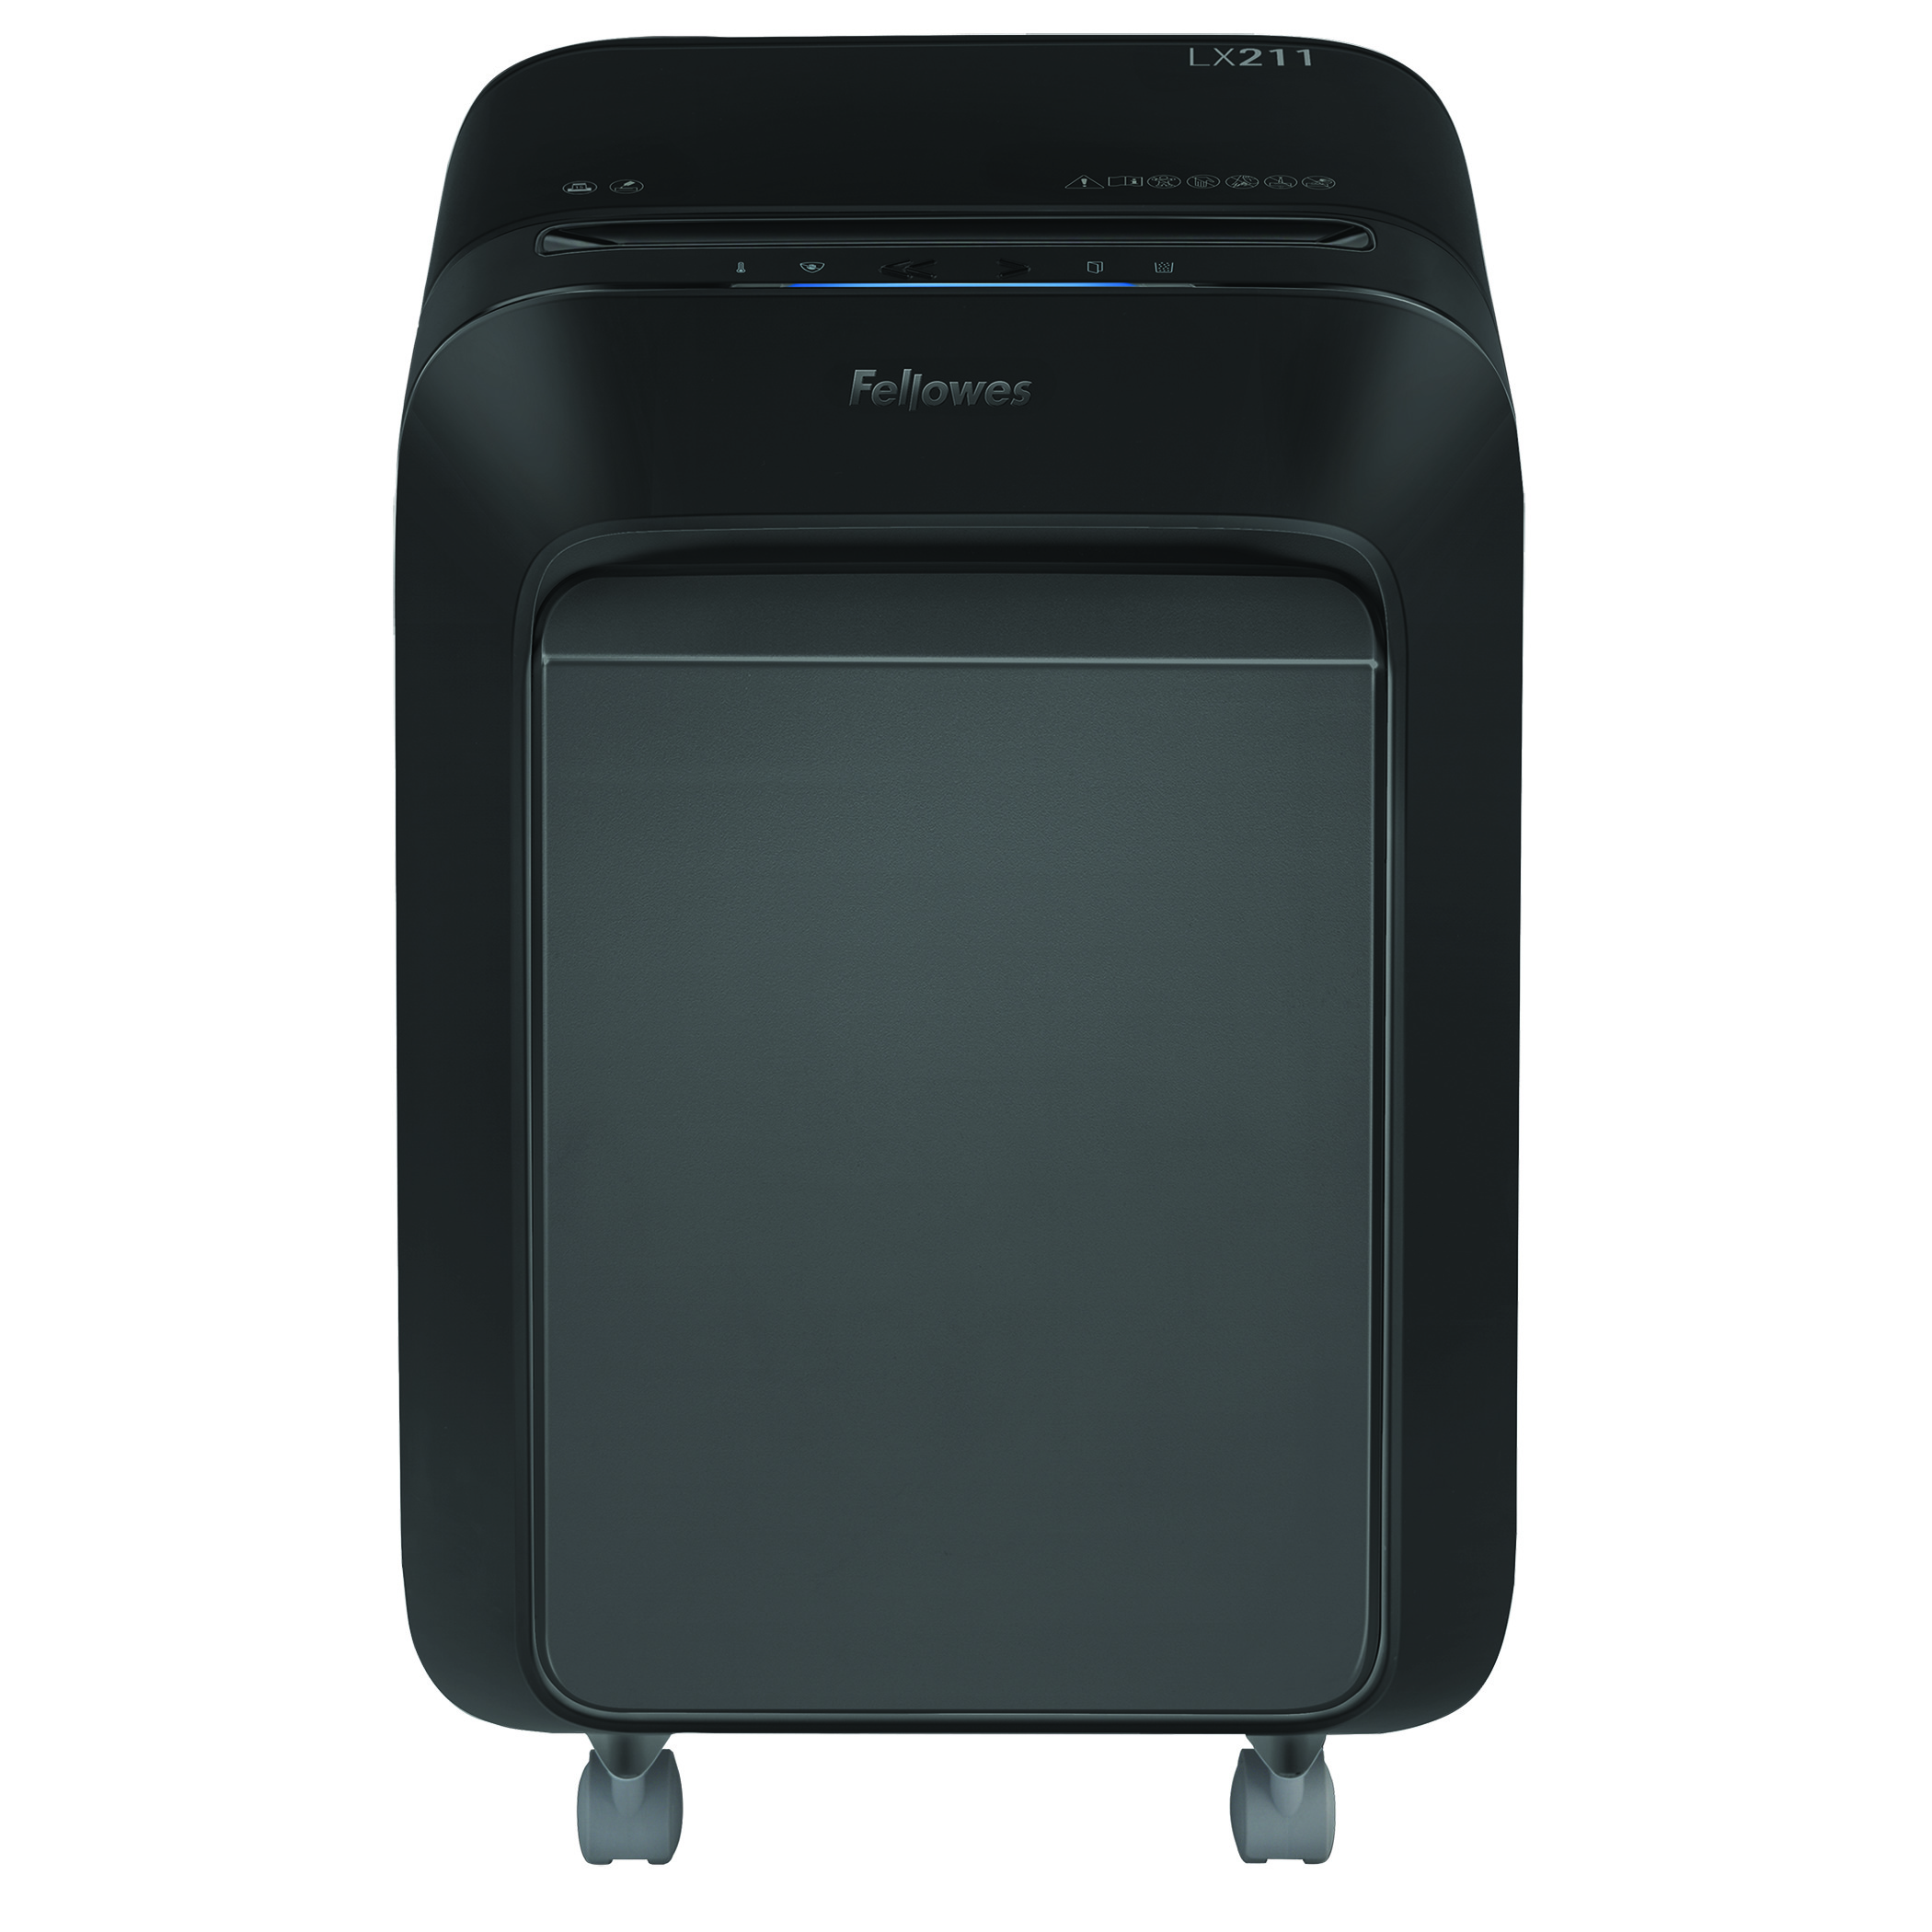 Fellowes LX211 15 Sheet Micro Cut Shredder - Black